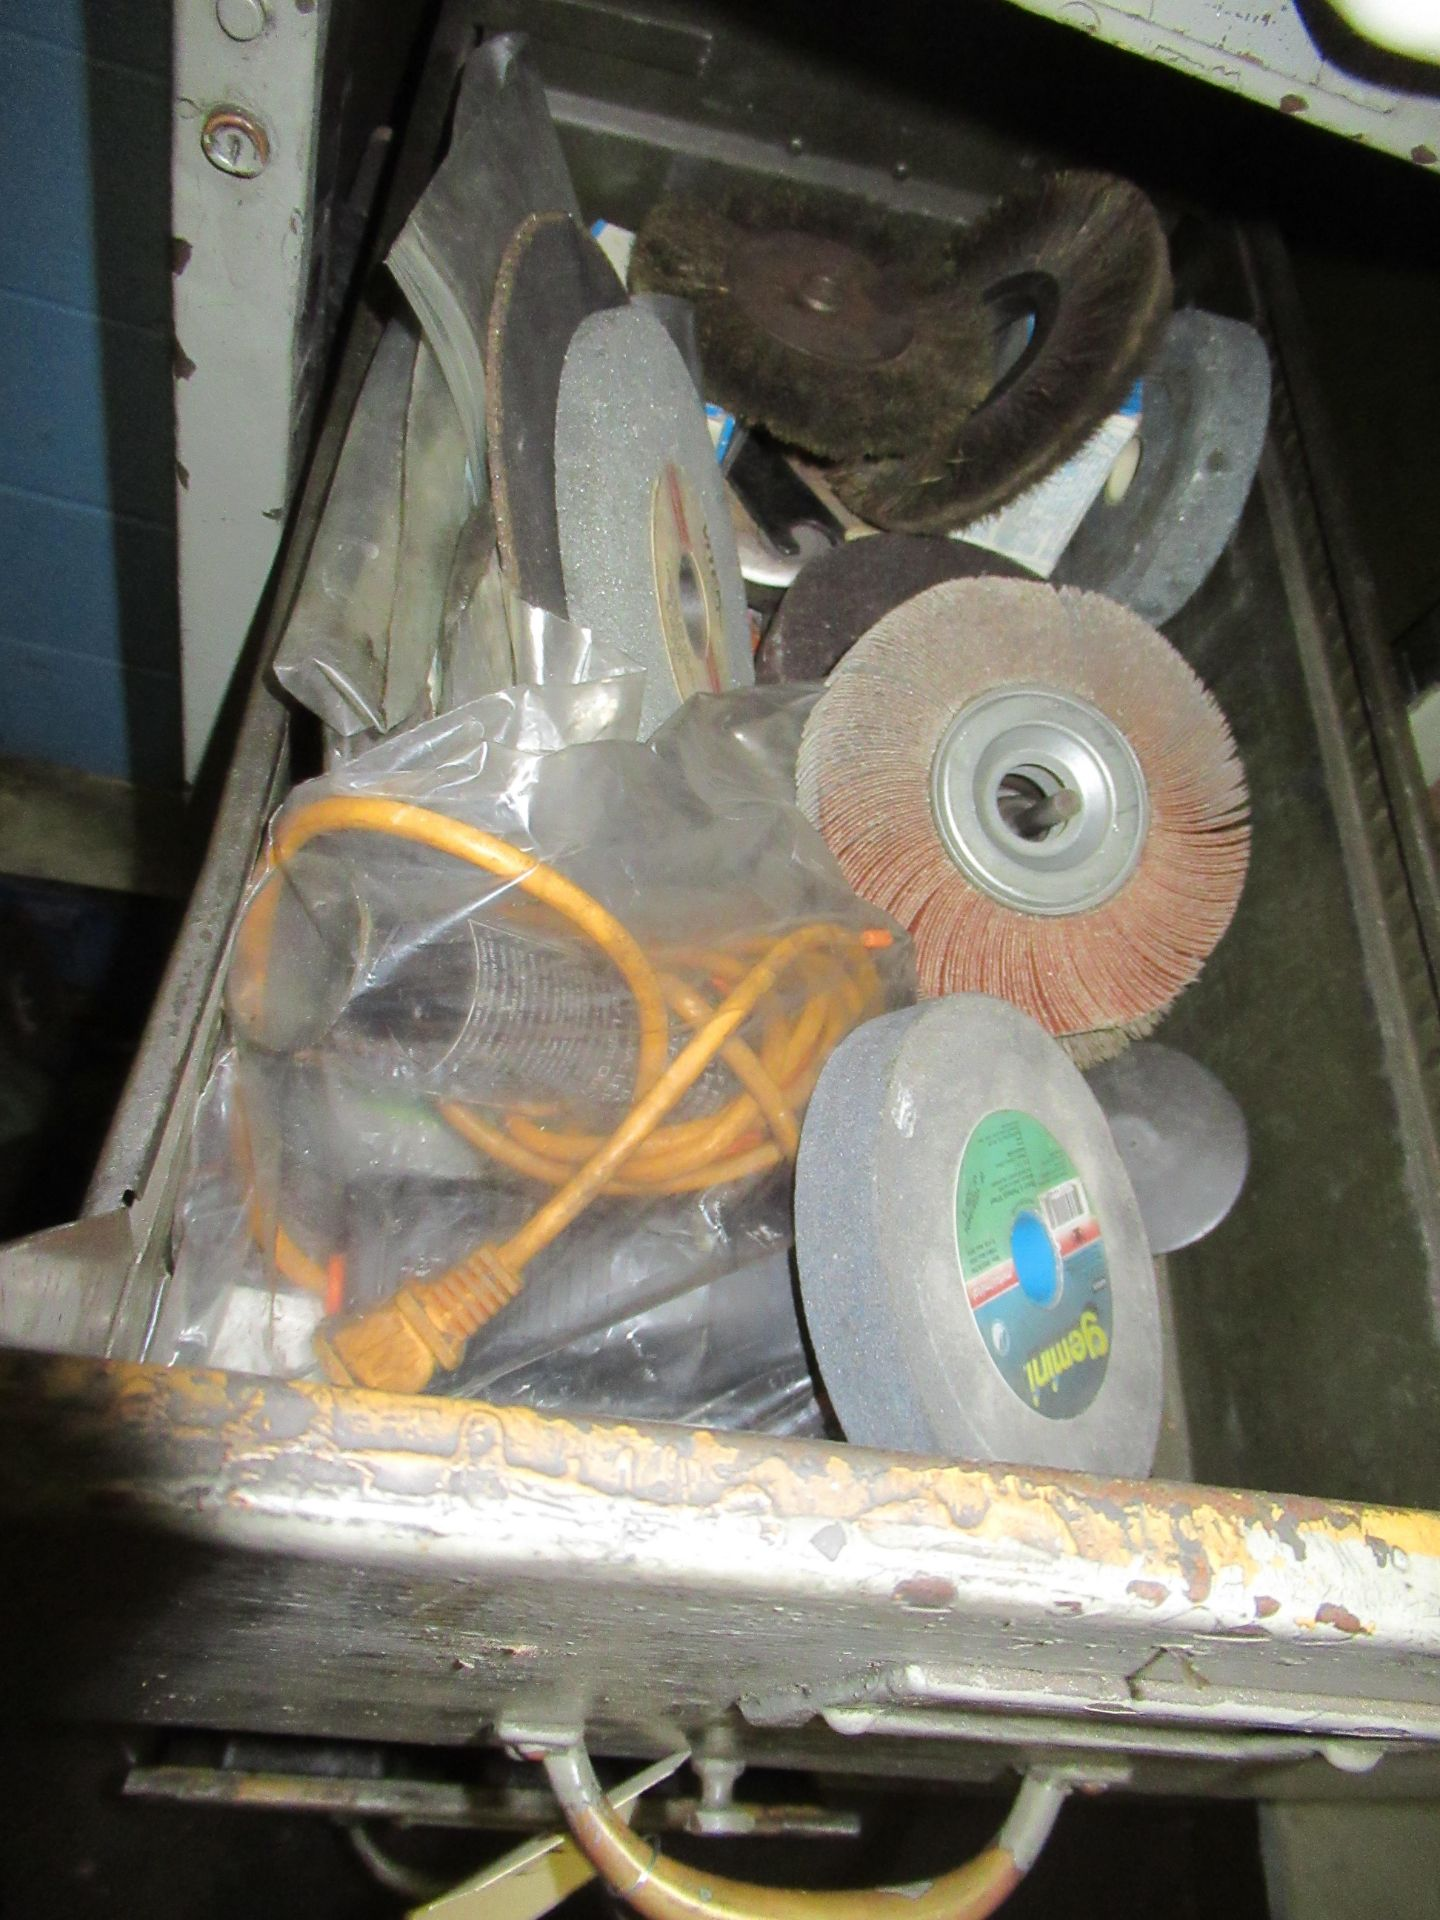 CABINETS OF ASSORTED SANDING WHEELS, GRINDING STONES CUT OFF BLADES, ETC - Image 2 of 4